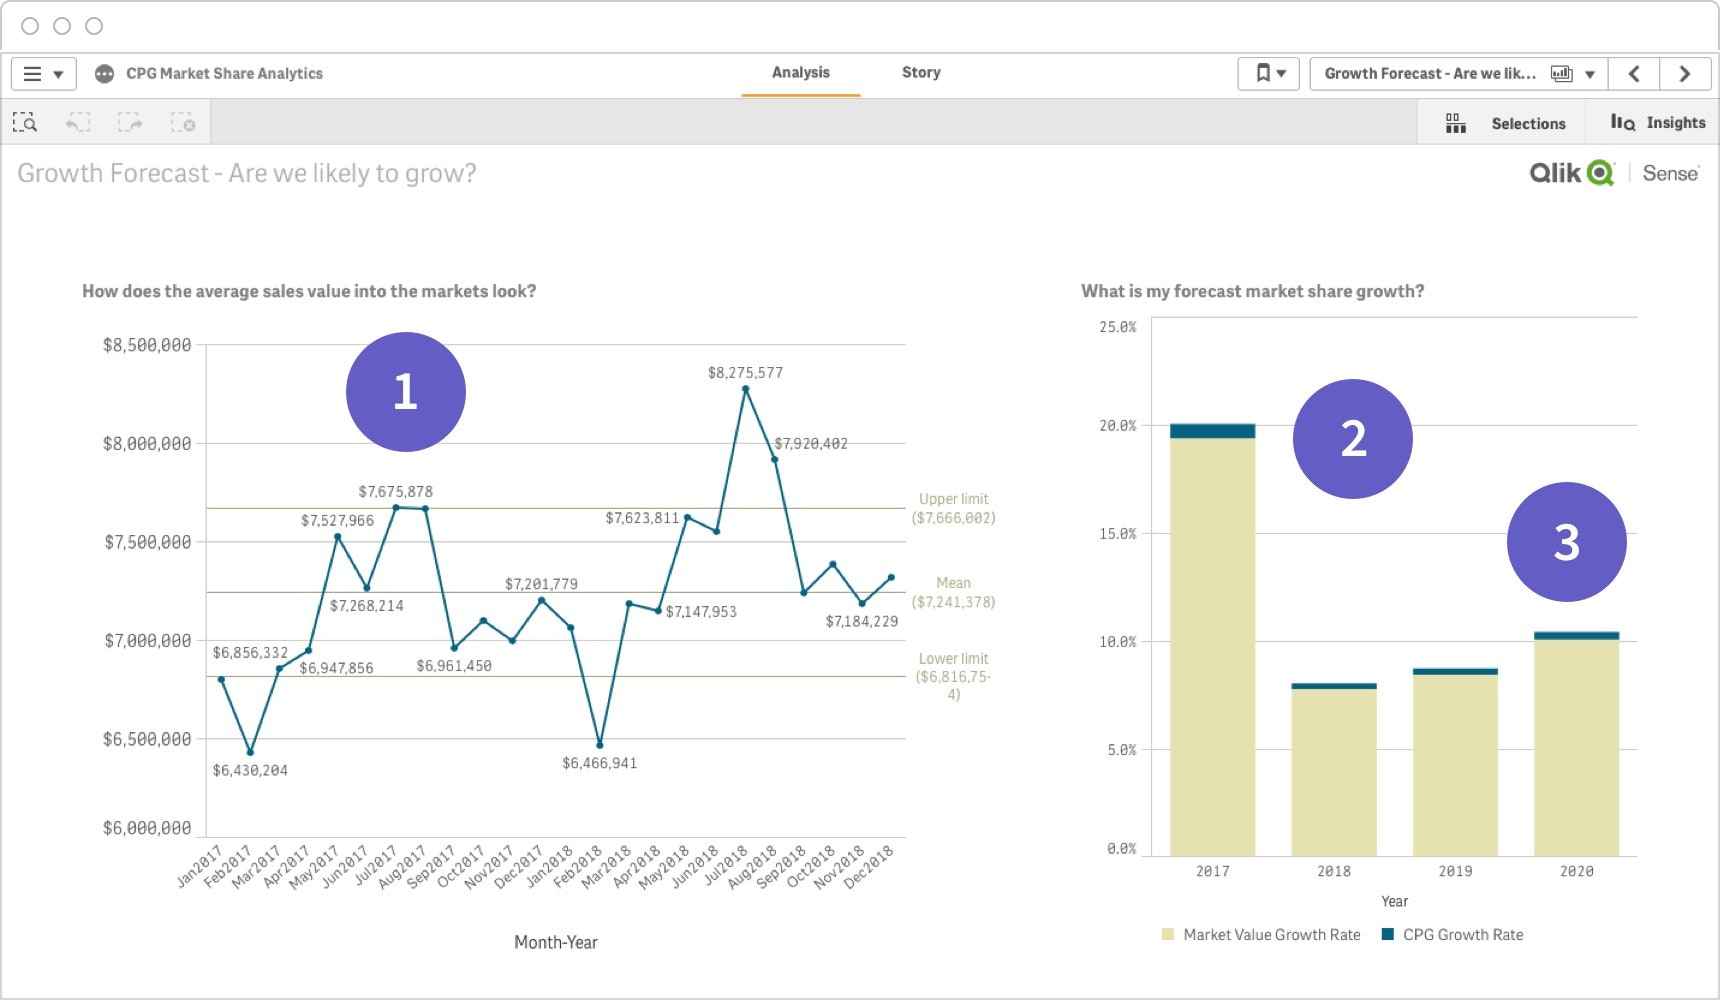 A Qlik Sense analytical dashboard design demonstration of interactive analysis, forecasts and comparison data.